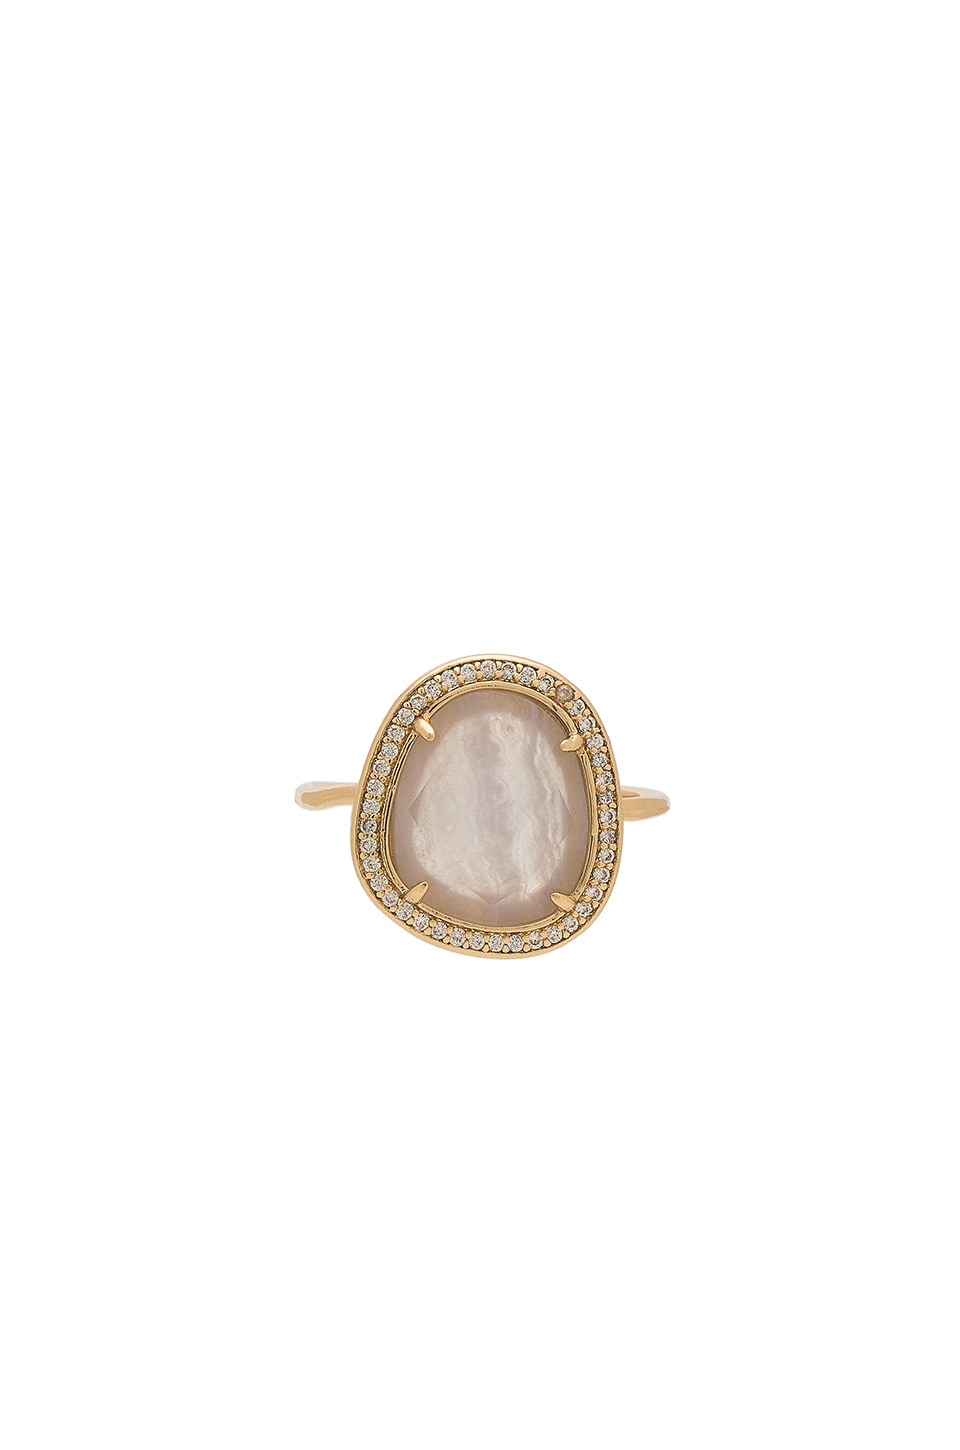 Melanie Auld Stone Slice Ring in Blue Lace Agate & Gold